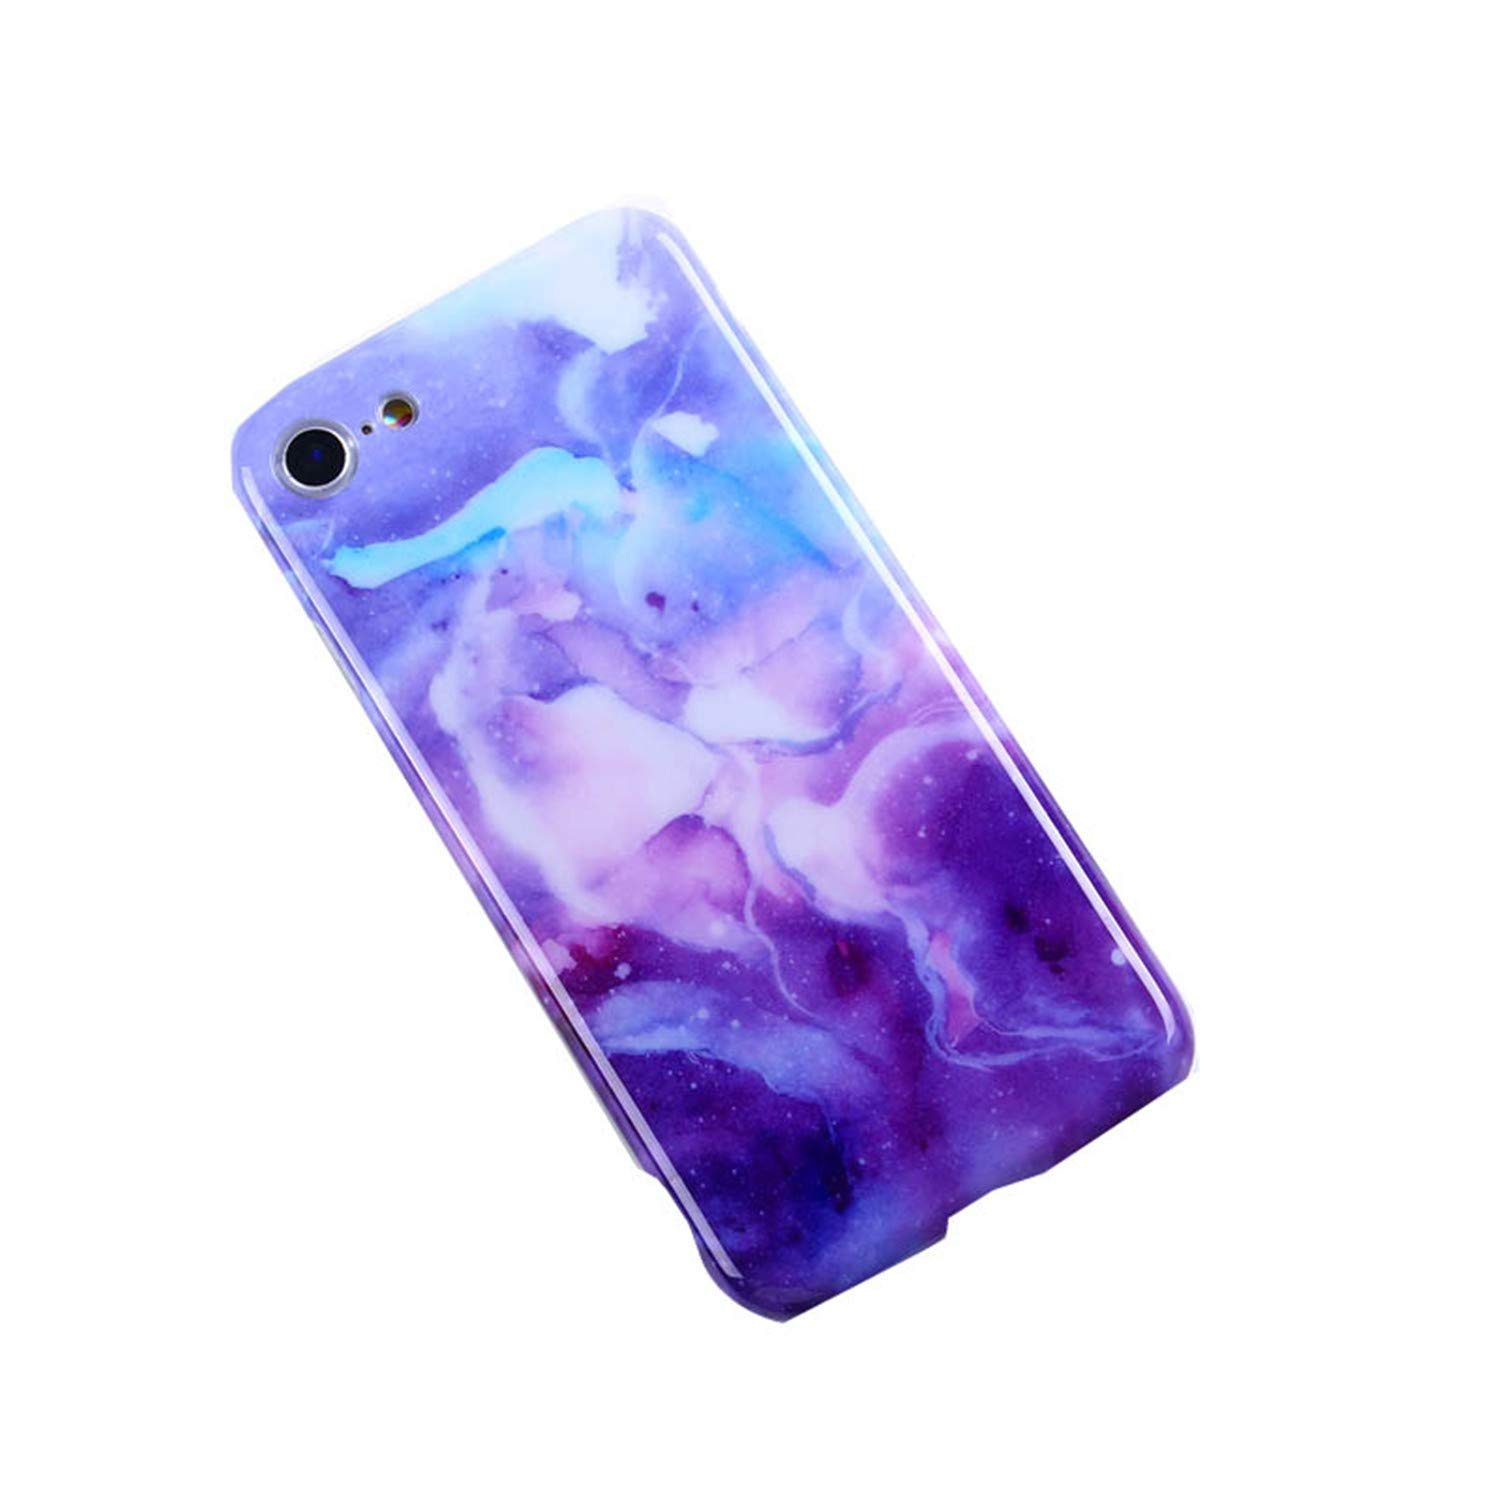 Amazon.com: Phone Case for iPhone 7 Case for iPhone X 7 6 6S ...